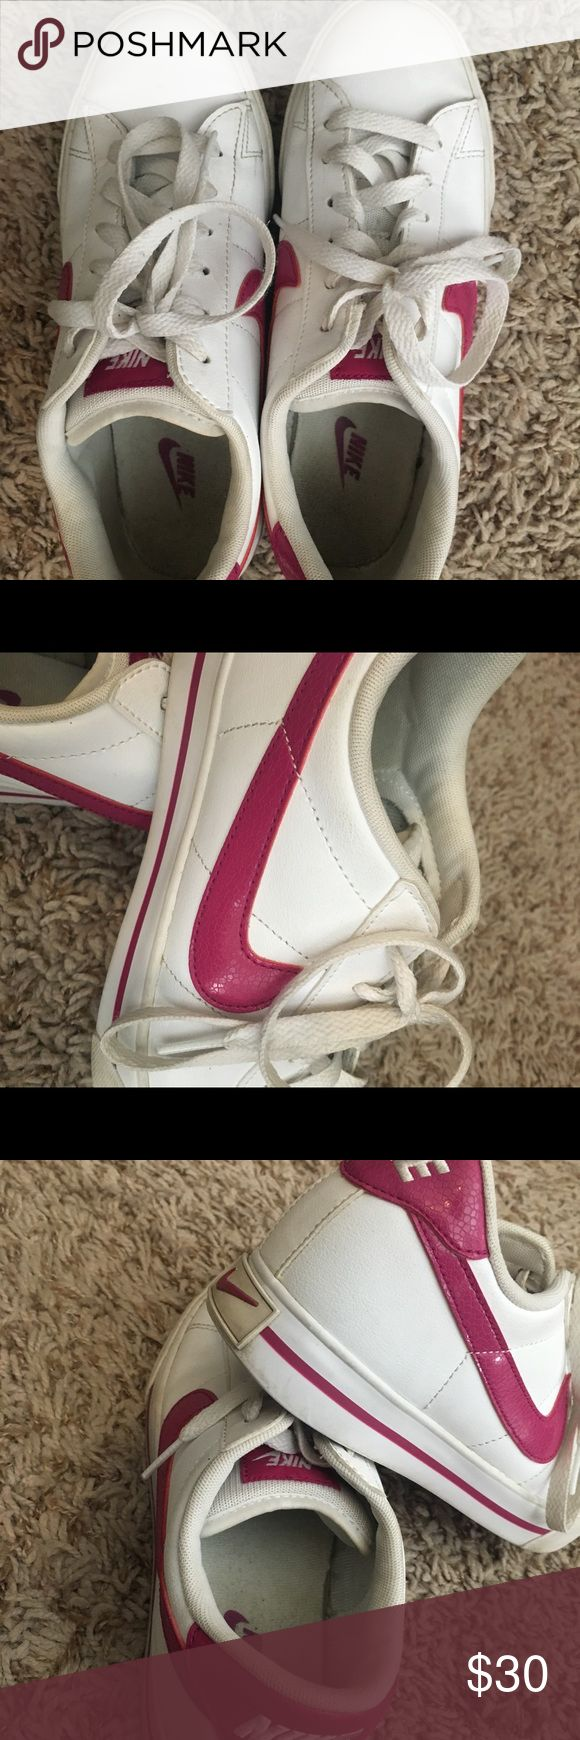 LADIES NIKE SHOES White and pink, ladies size 7 NIKE'S. Worn, but well taken care of and plenty of life left in them! Cute and comfy!! Nike Shoes Sneakers